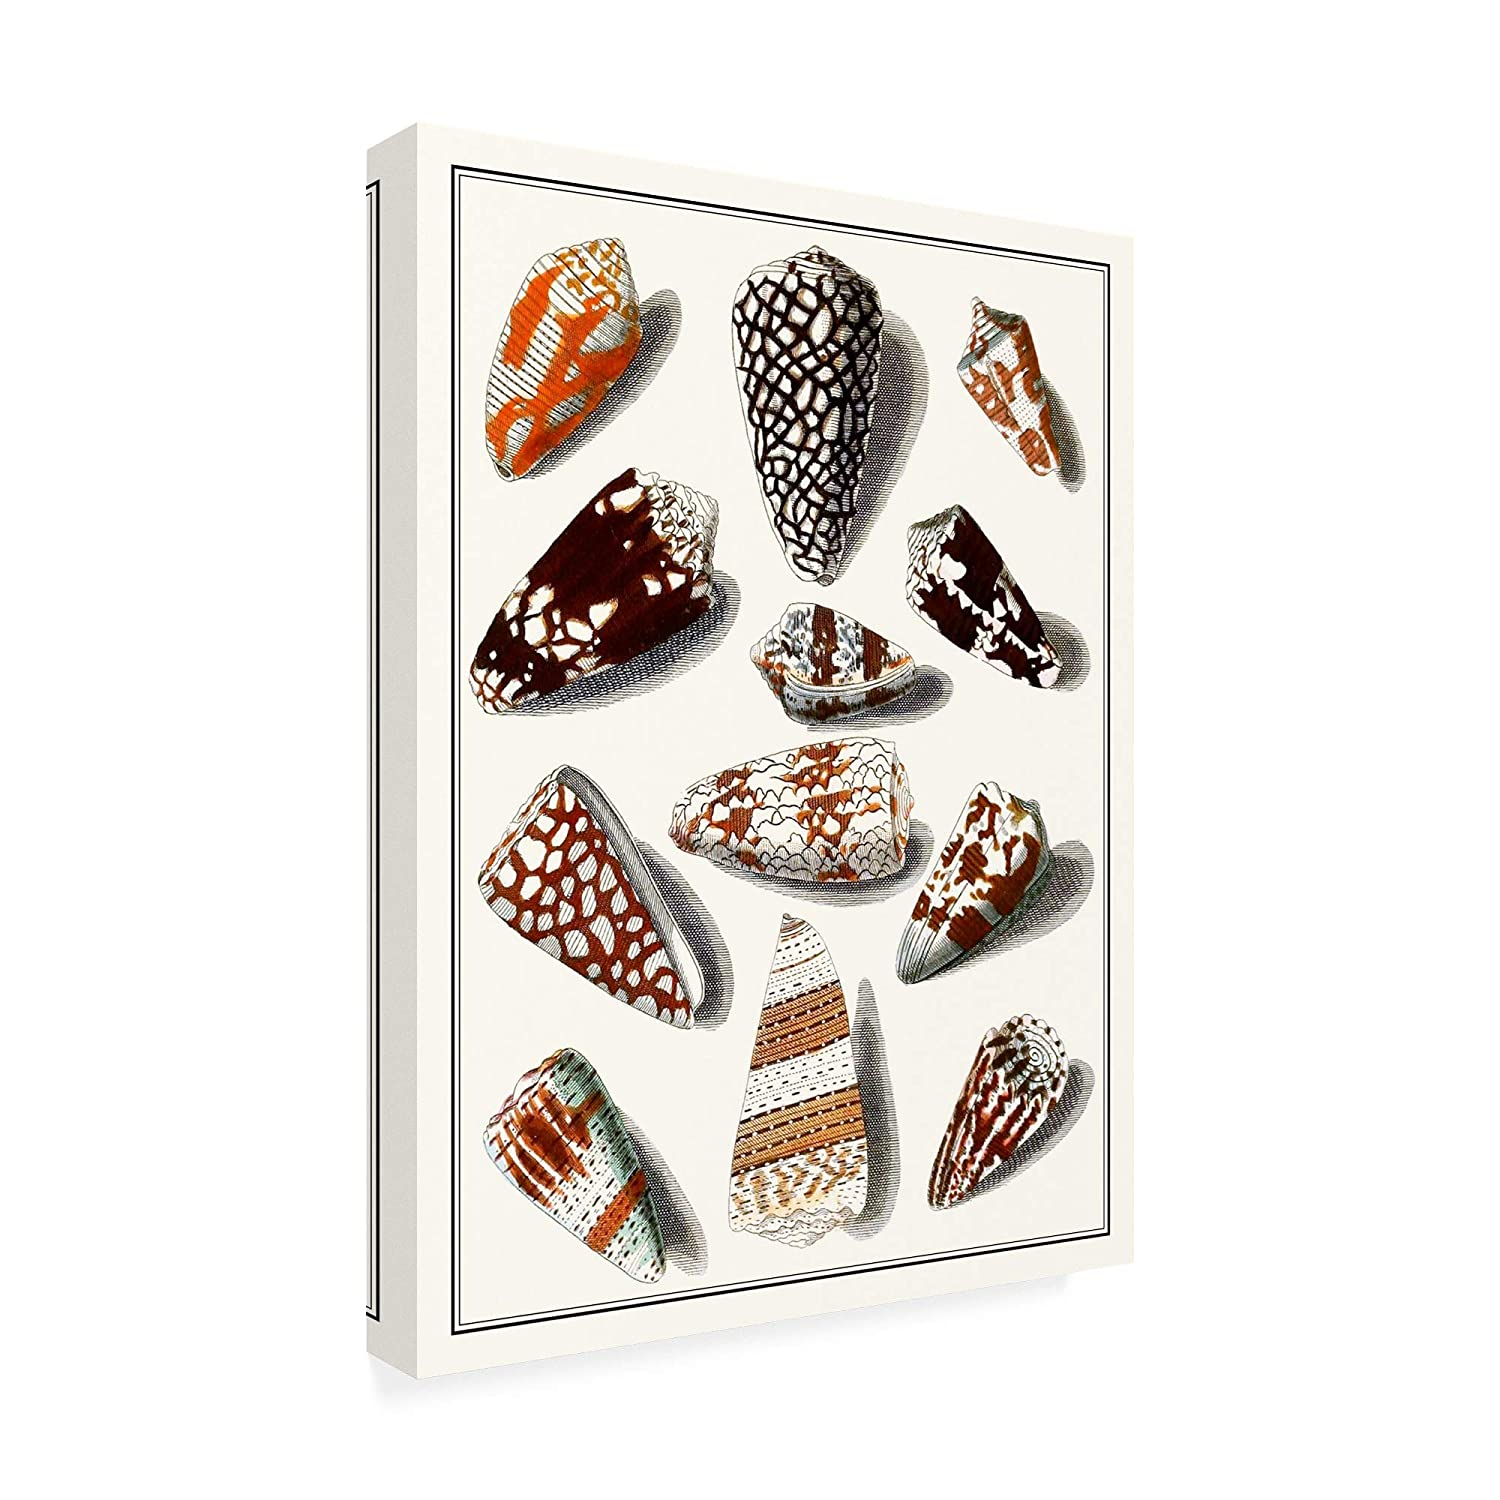 Amazon.com: Trademark Fine Art Collected Shells V by Vision Studio, 18x24: Home & Kitchen